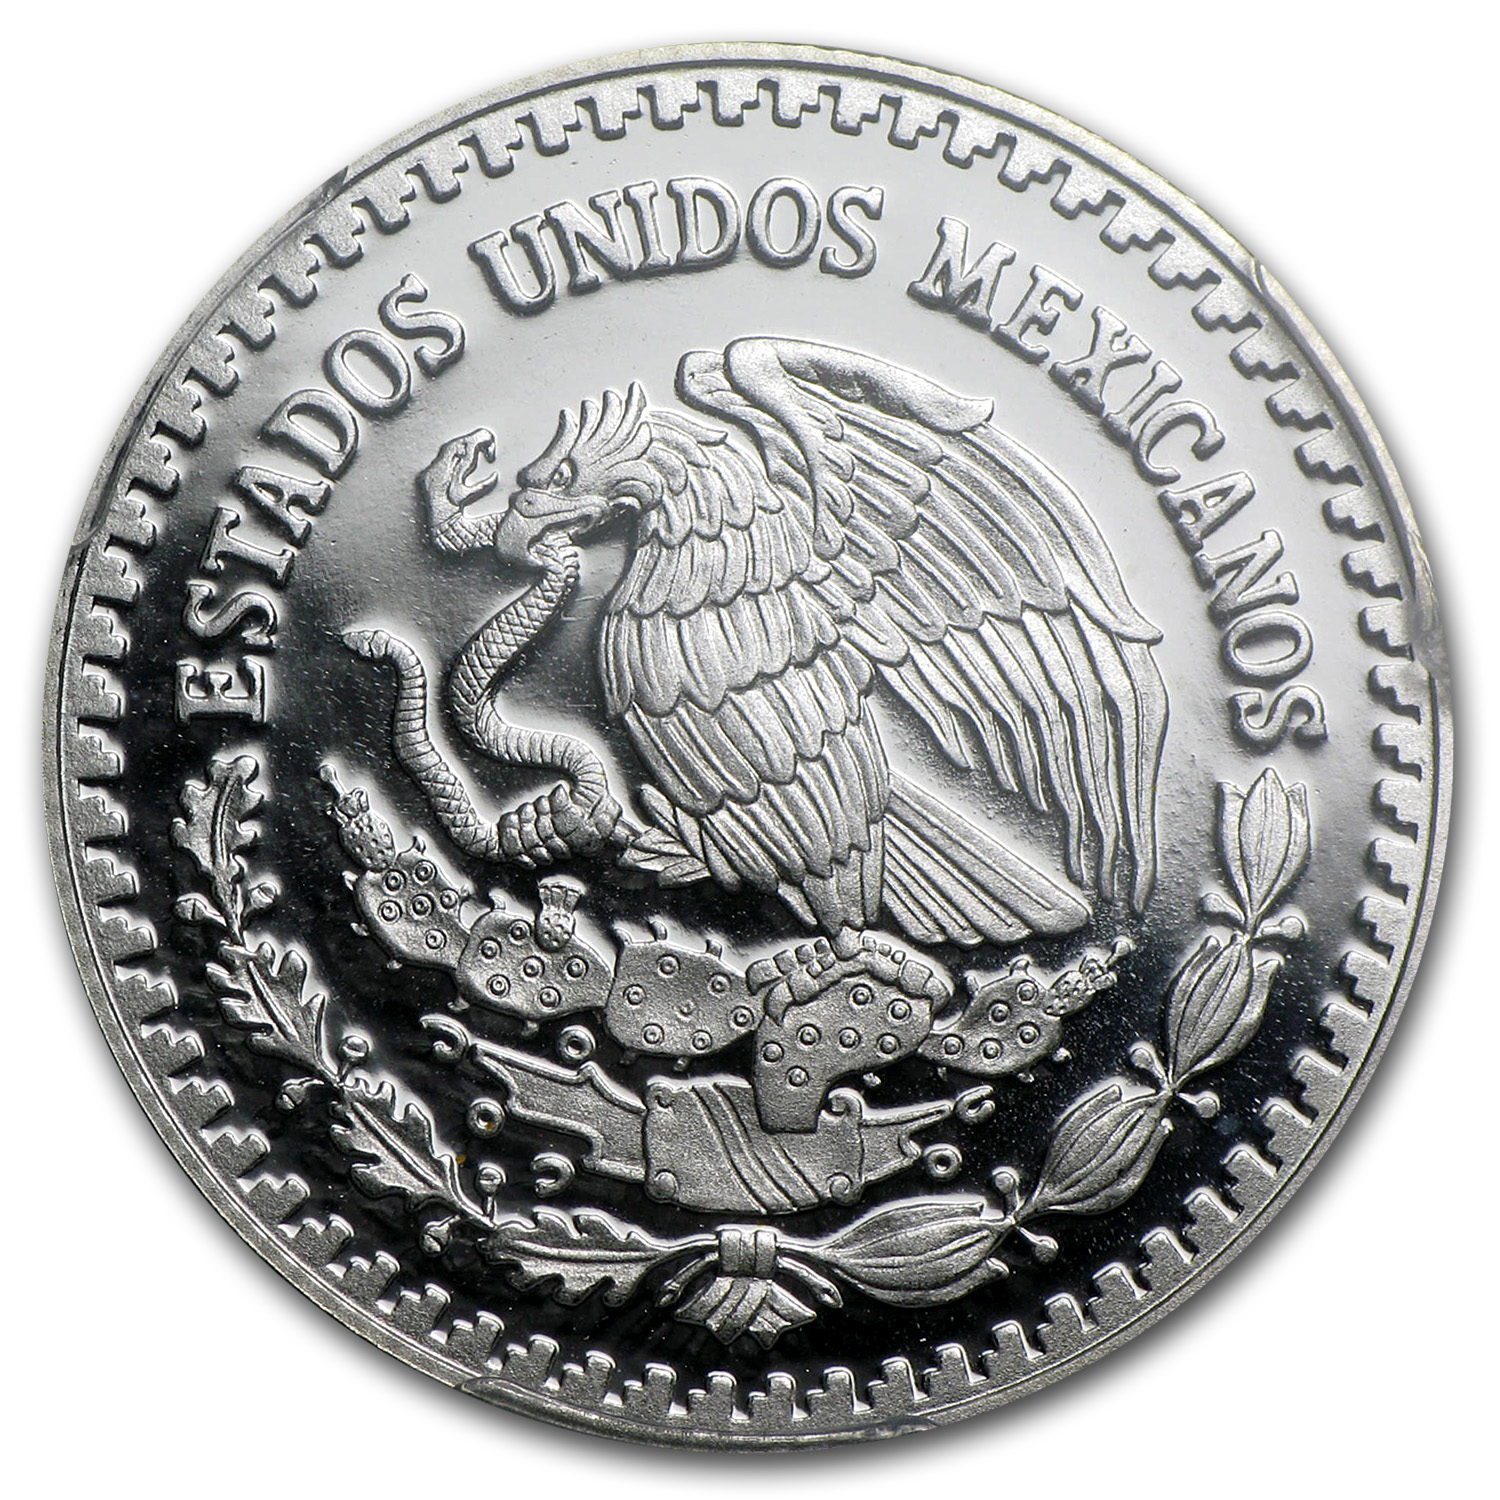 2009 Mexico 1/4 oz Proof Silver Libertad PR-69 PCGS